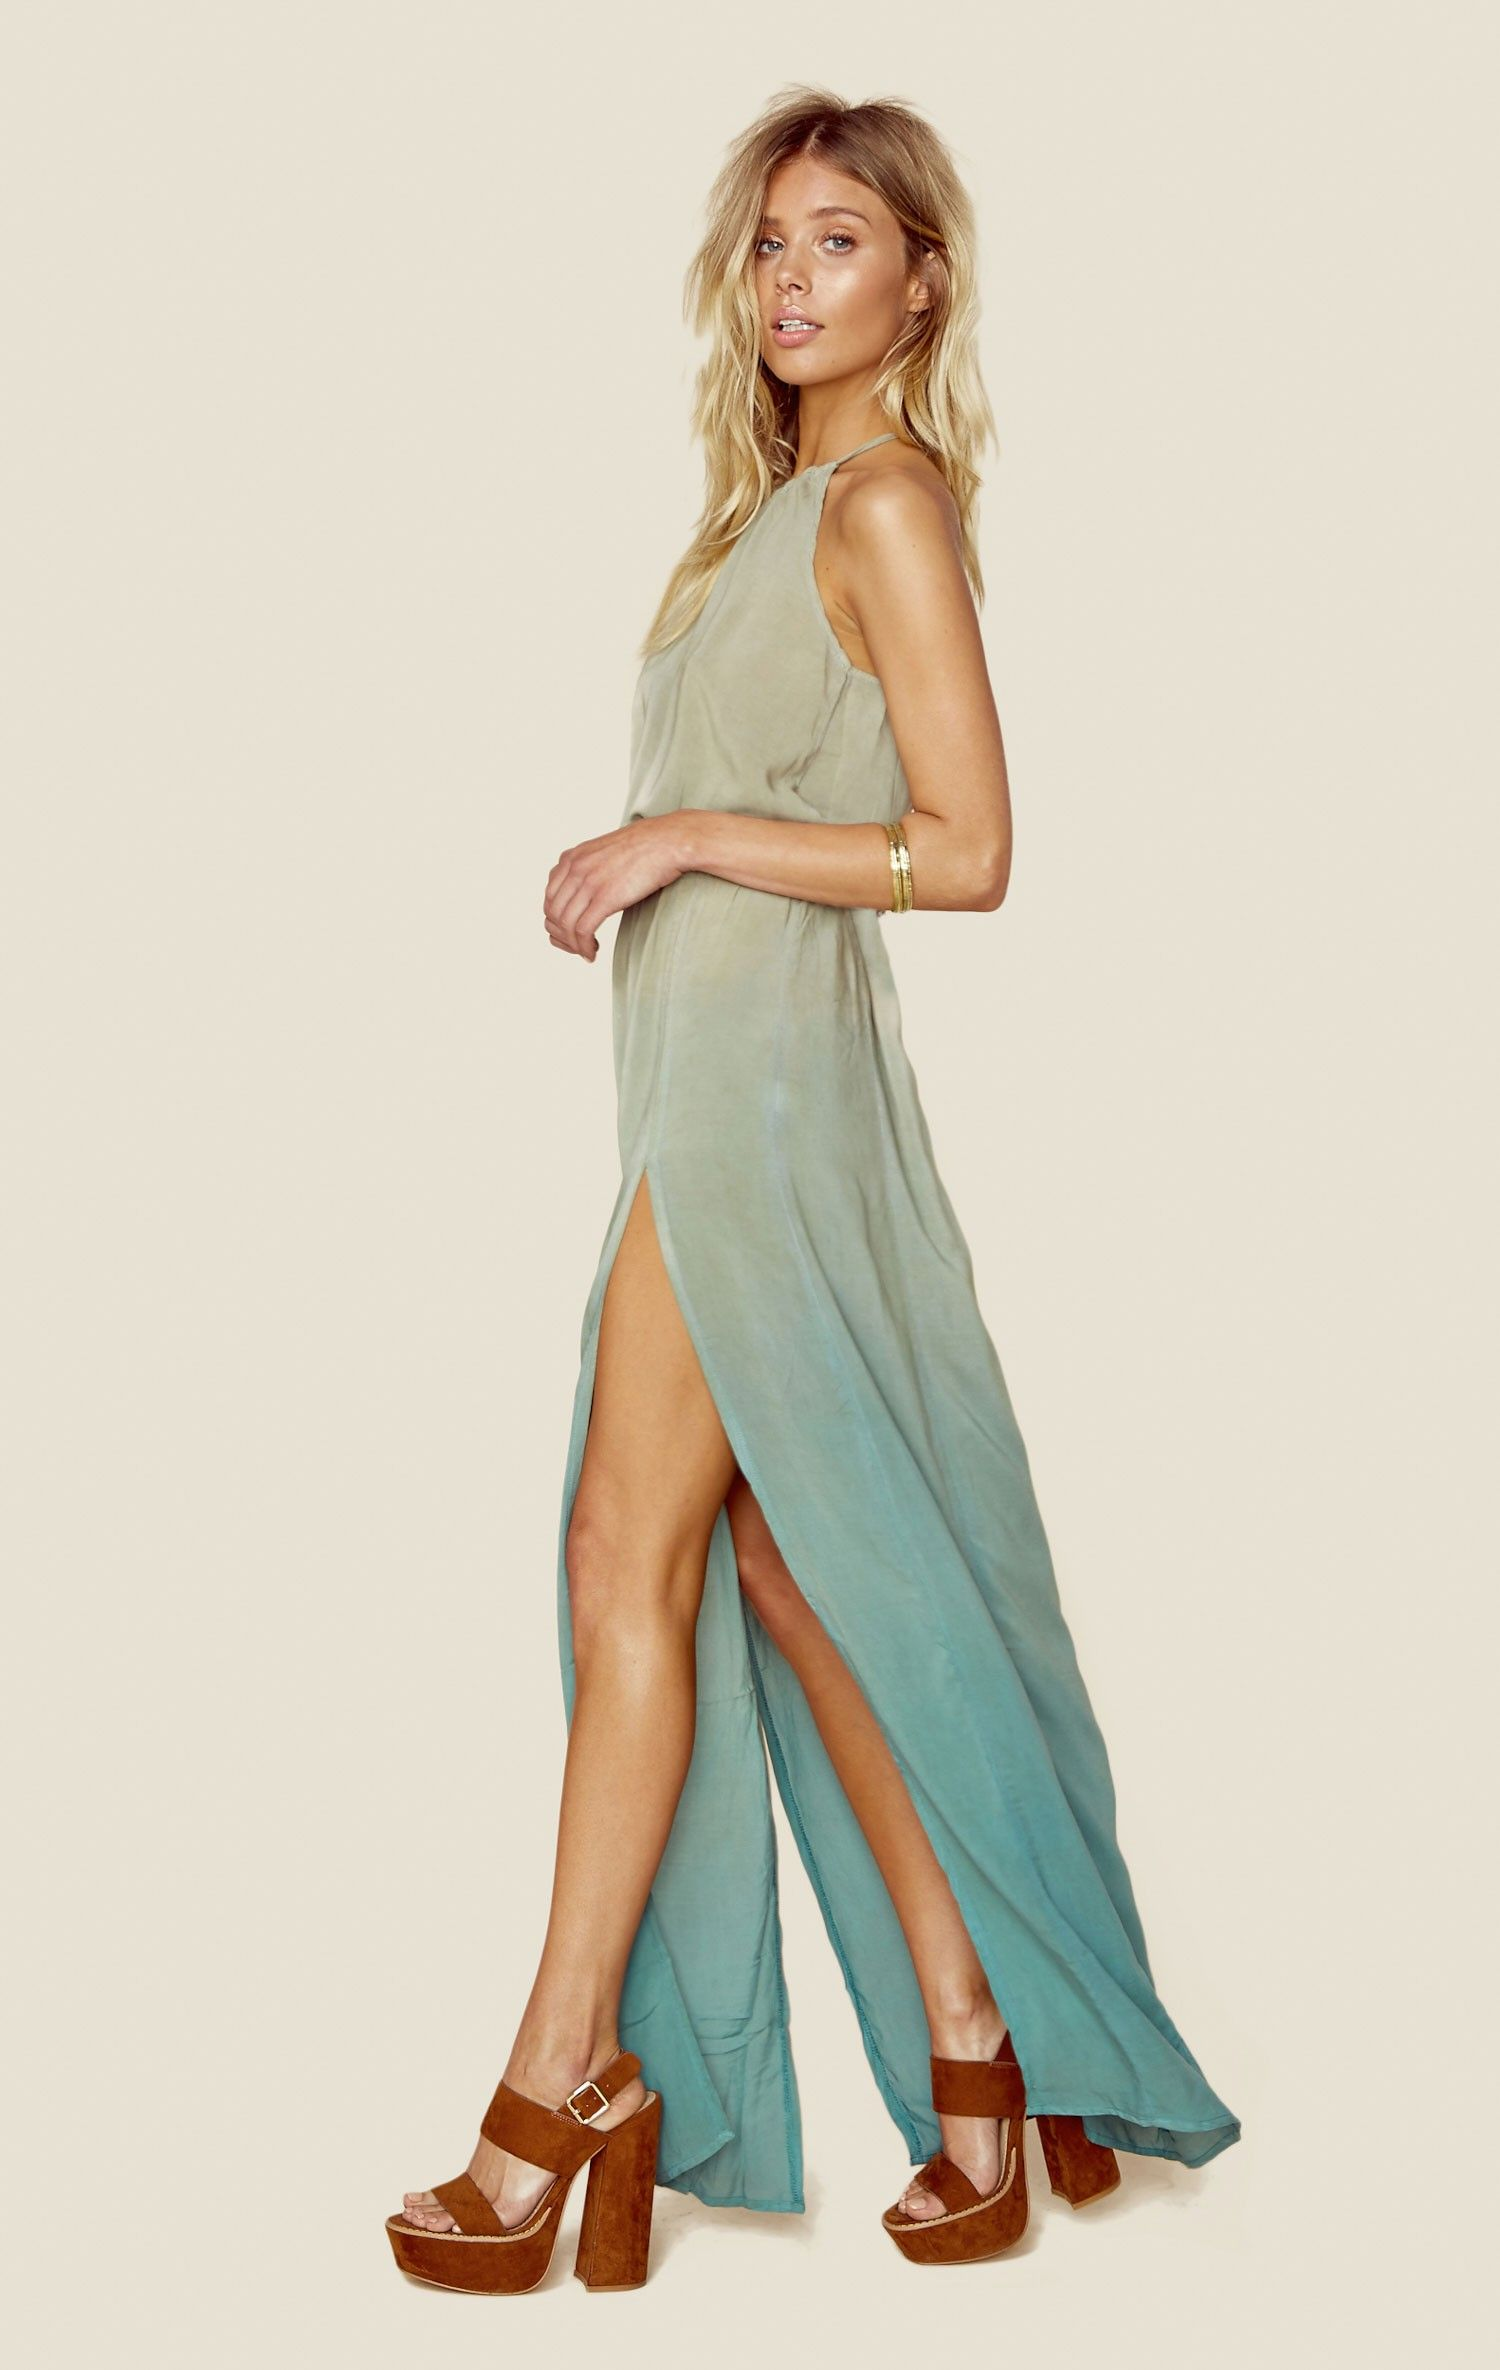 slit halter dress clothes elastic waist and boho